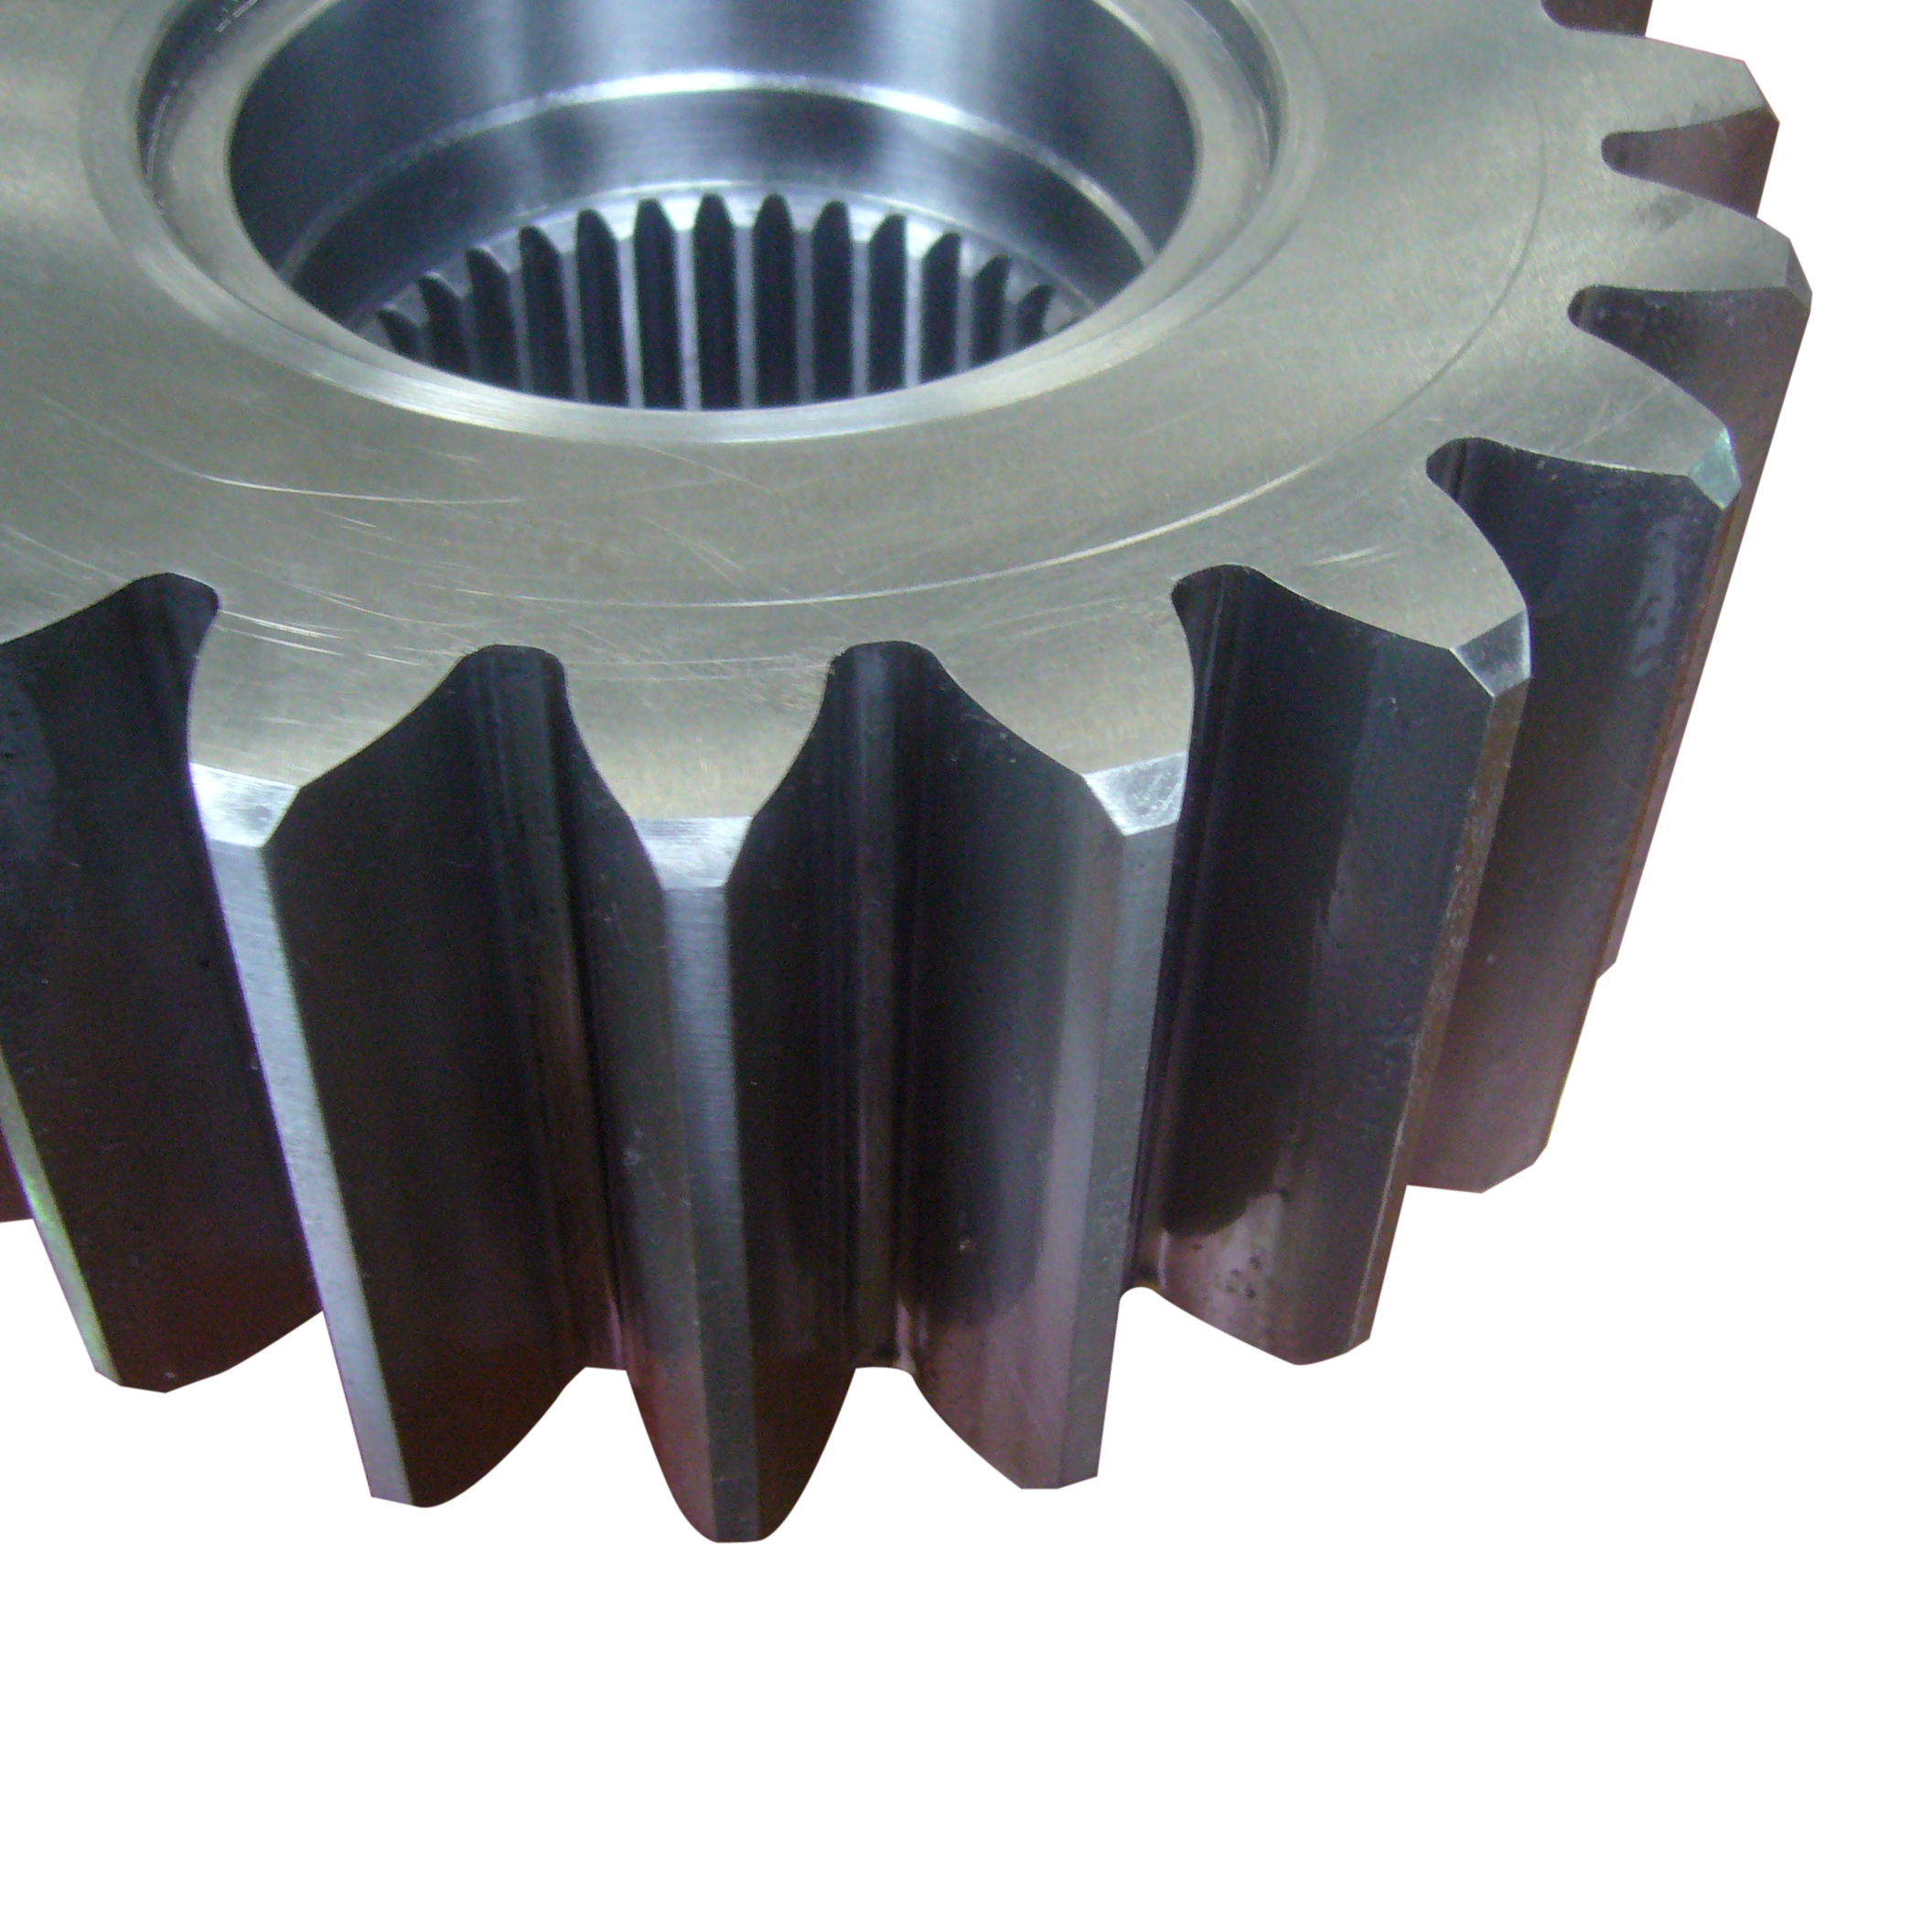 Pinion For Tunnel Boring Machine Manufacturers, Pinion For Tunnel Boring Machine Factory, Supply Pinion For Tunnel Boring Machine